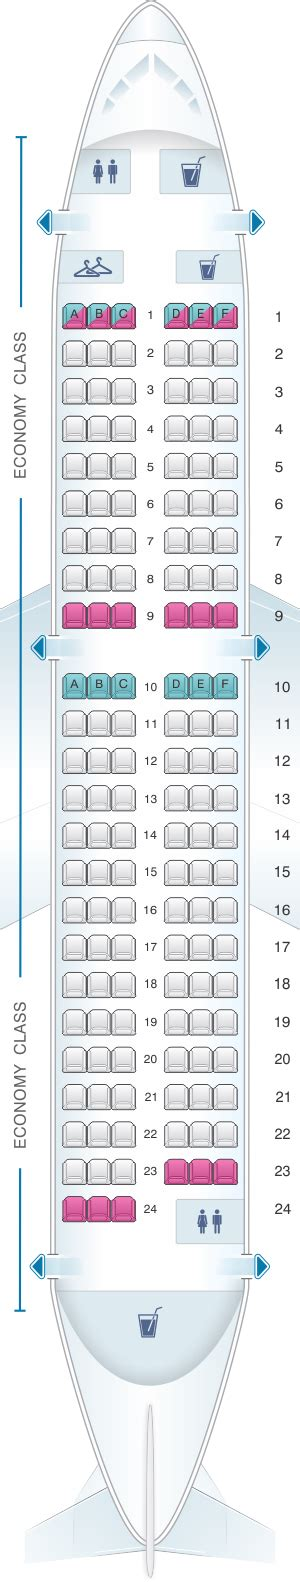 Seat Map Brussels Airlines Airbus A319 | SeatMaestro